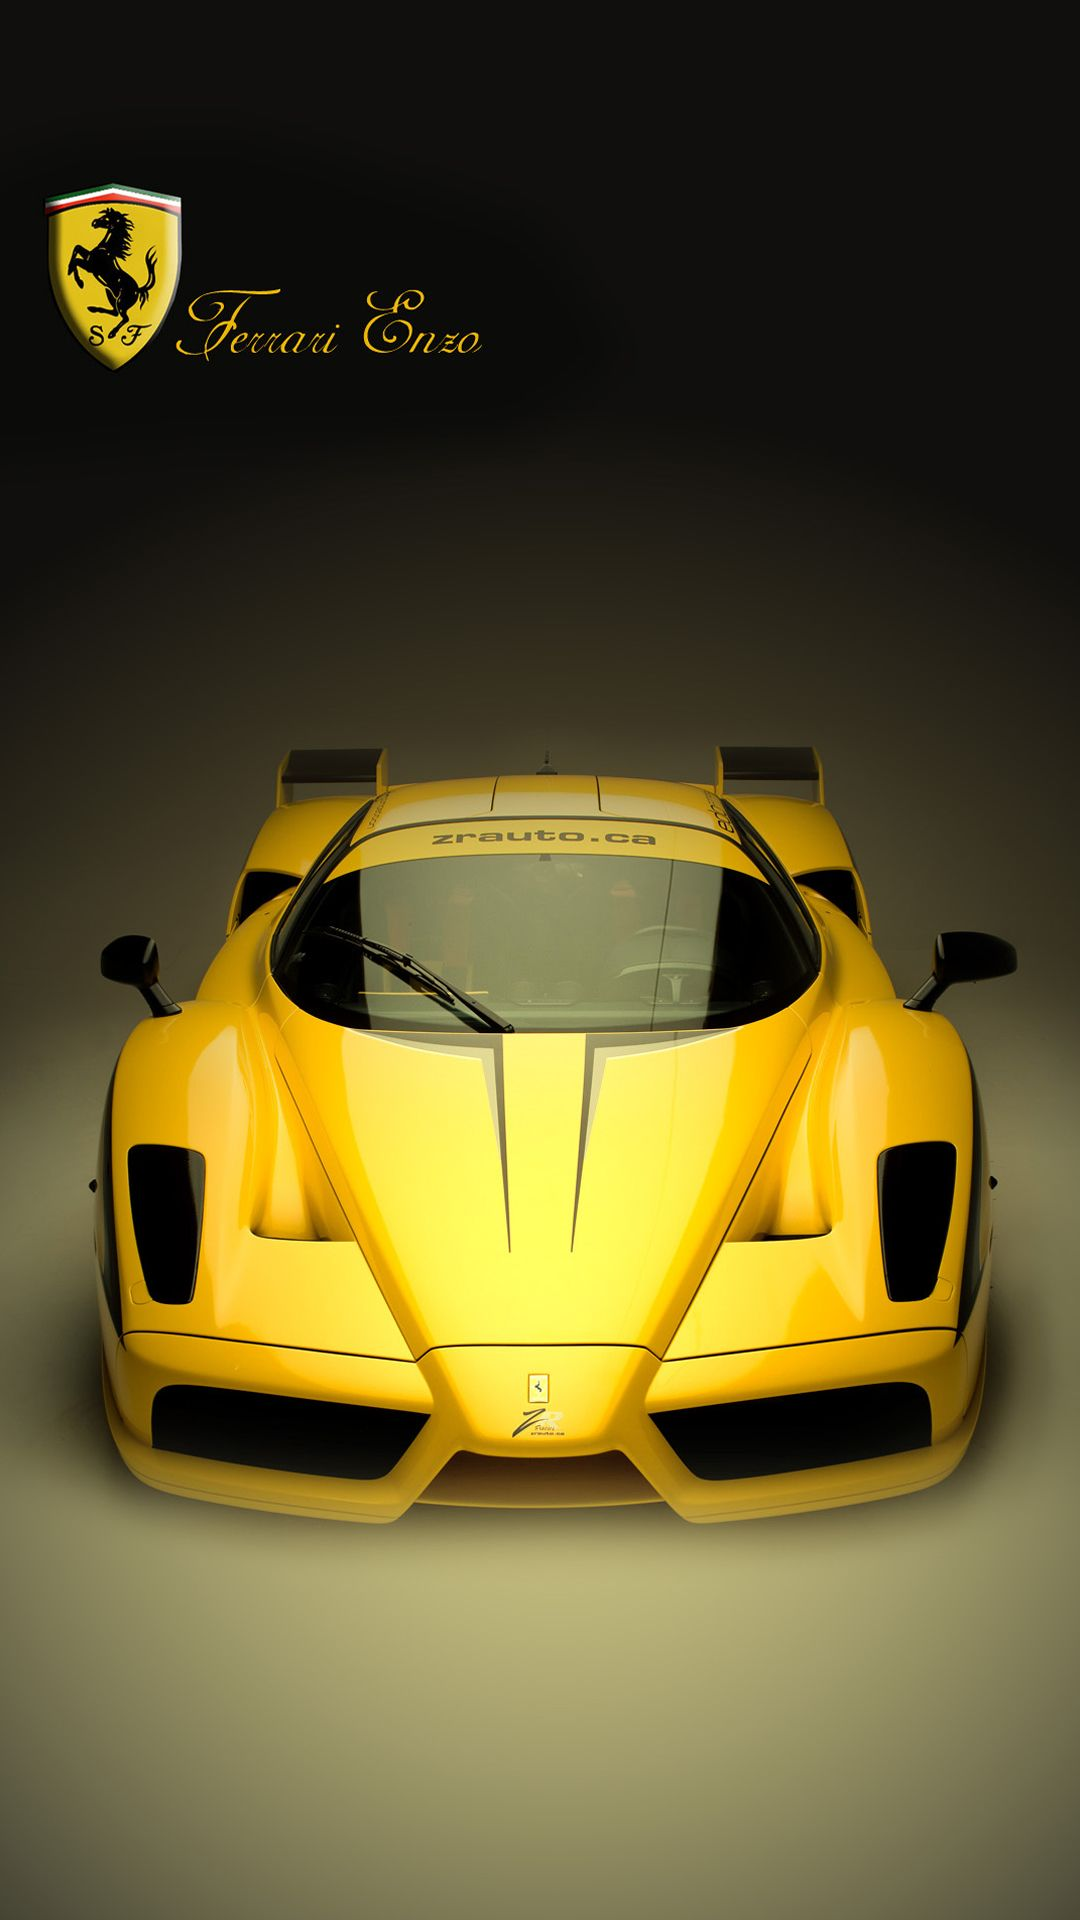 World Luxury Car Iphone 6 Plus Wallpaper Iphone 6 8 Wallpapers